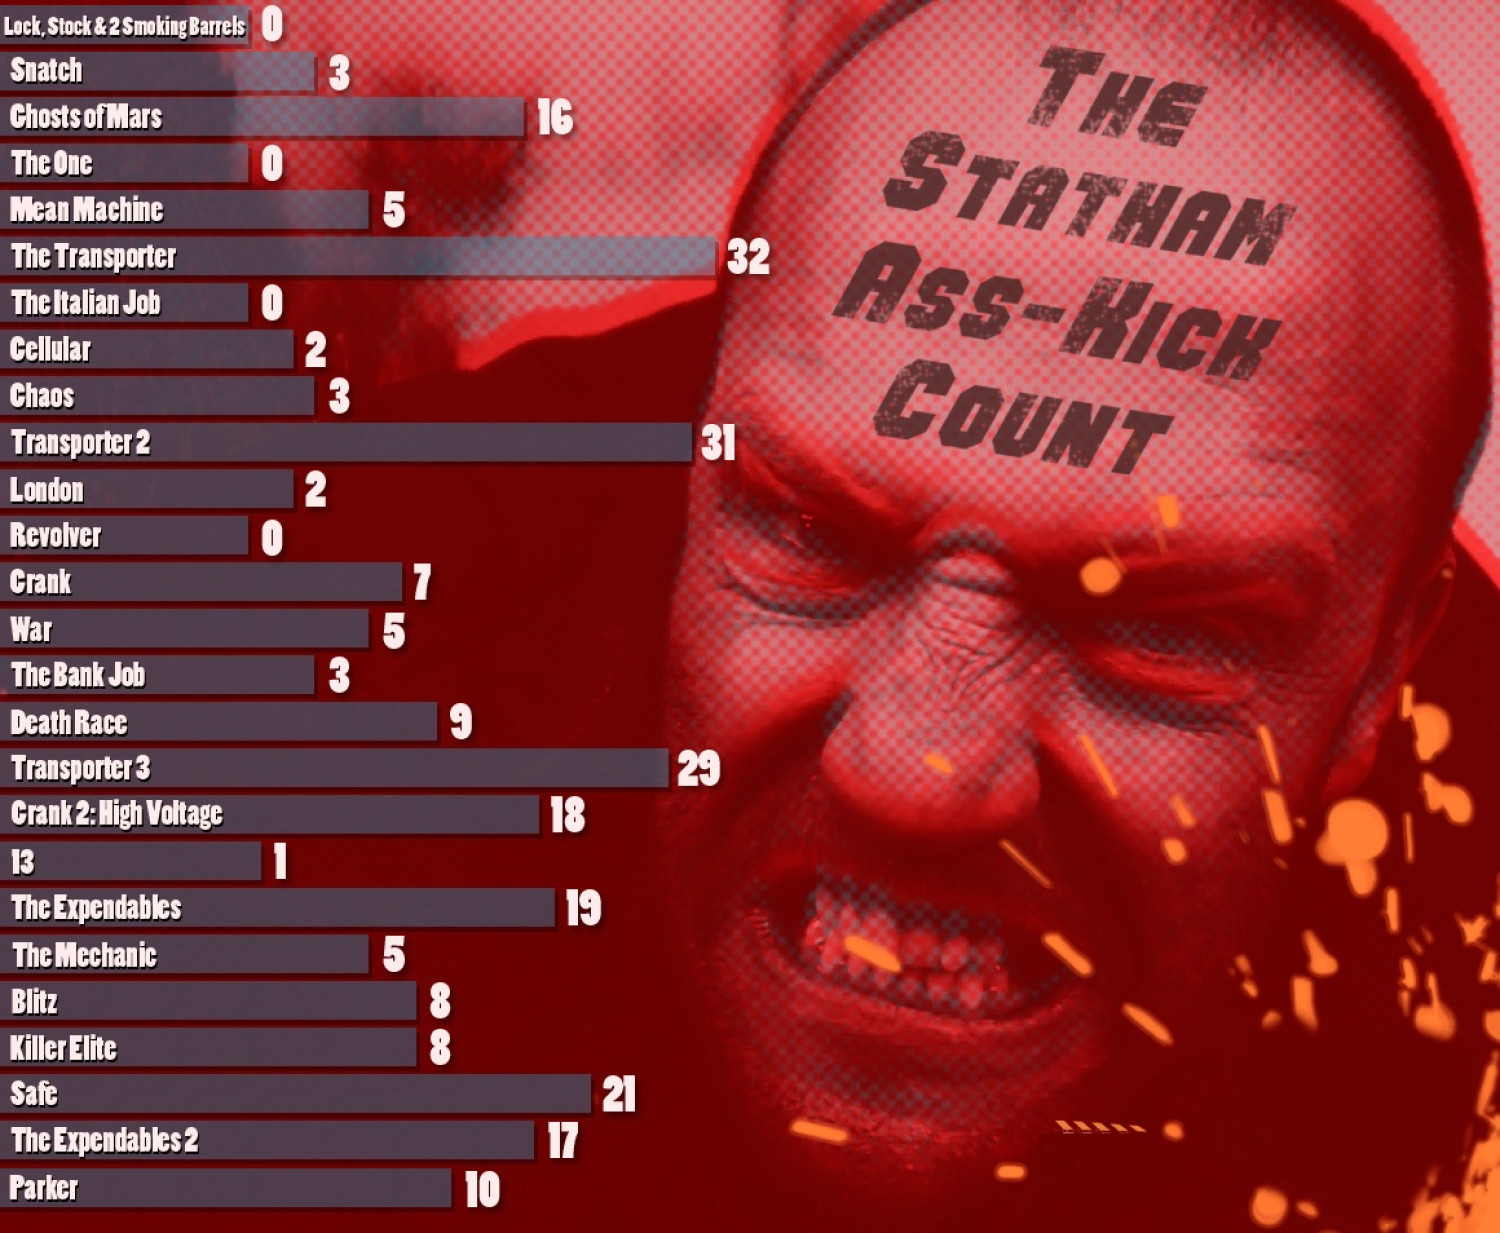 Jason Statham Kickass Count Infographic